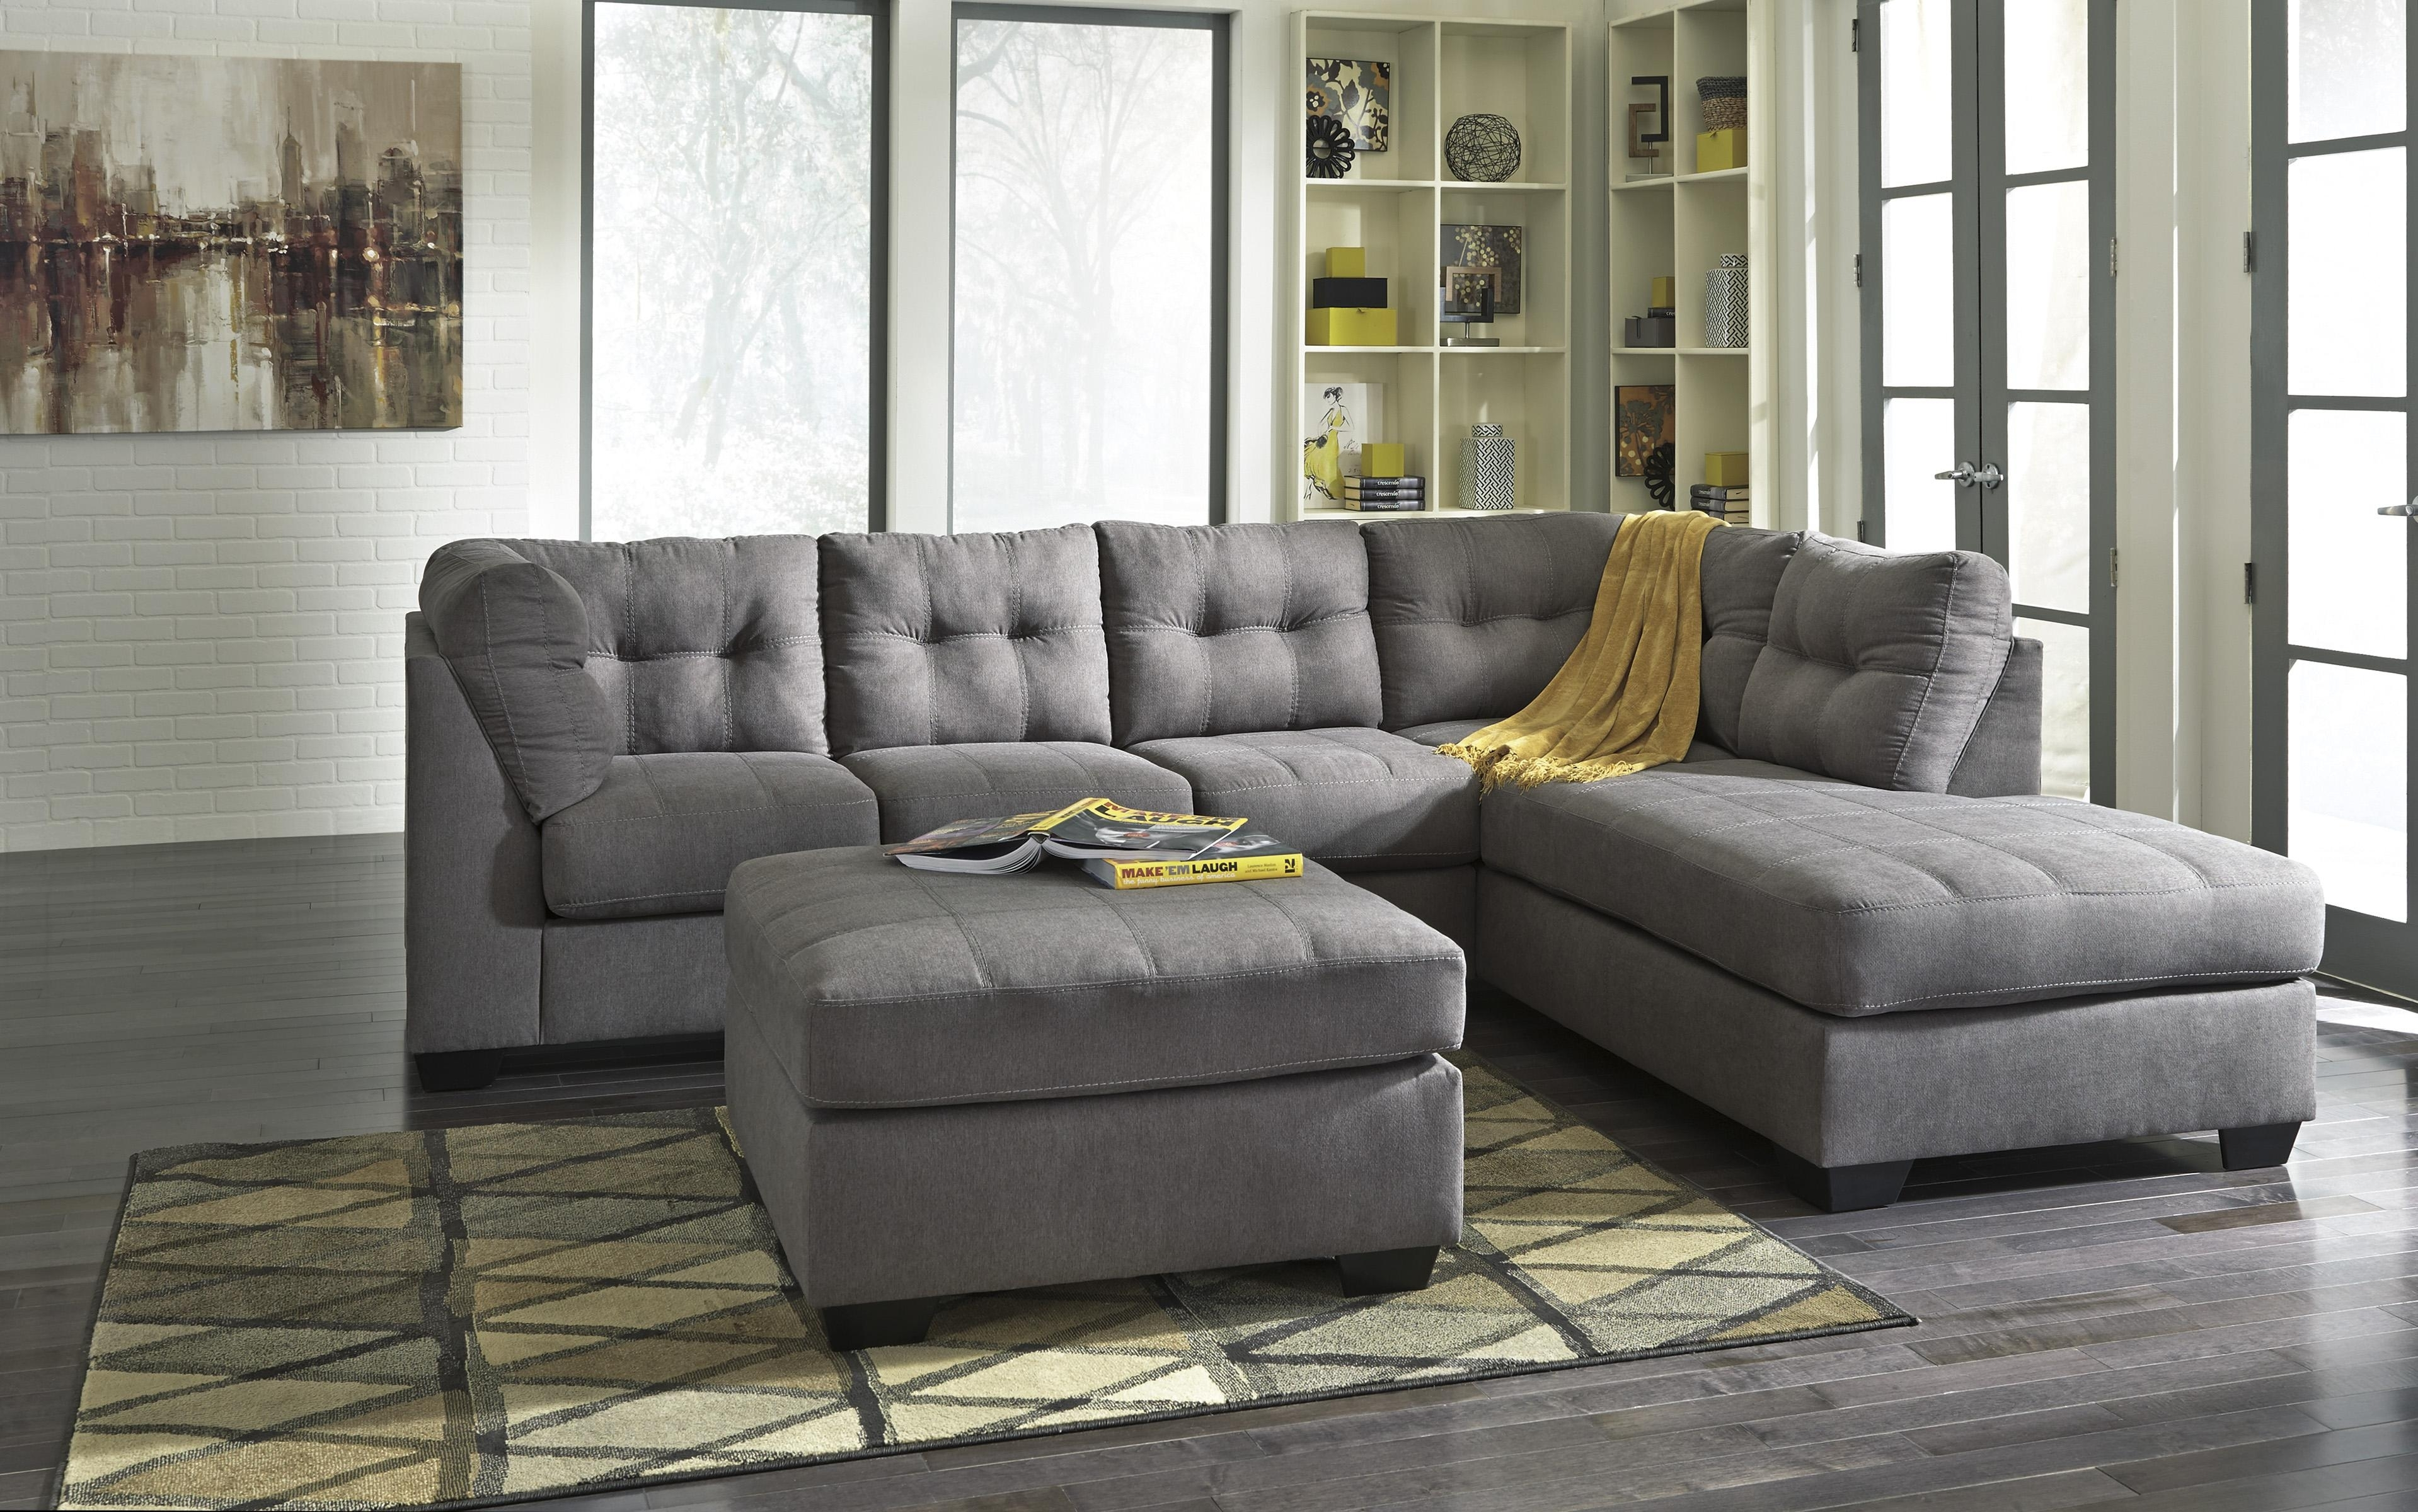 2 Piece Sectional With Right Chaisebenchcraft | Wolf And Inside Aurora 2 Piece Sectionals (Gallery 21 of 30)